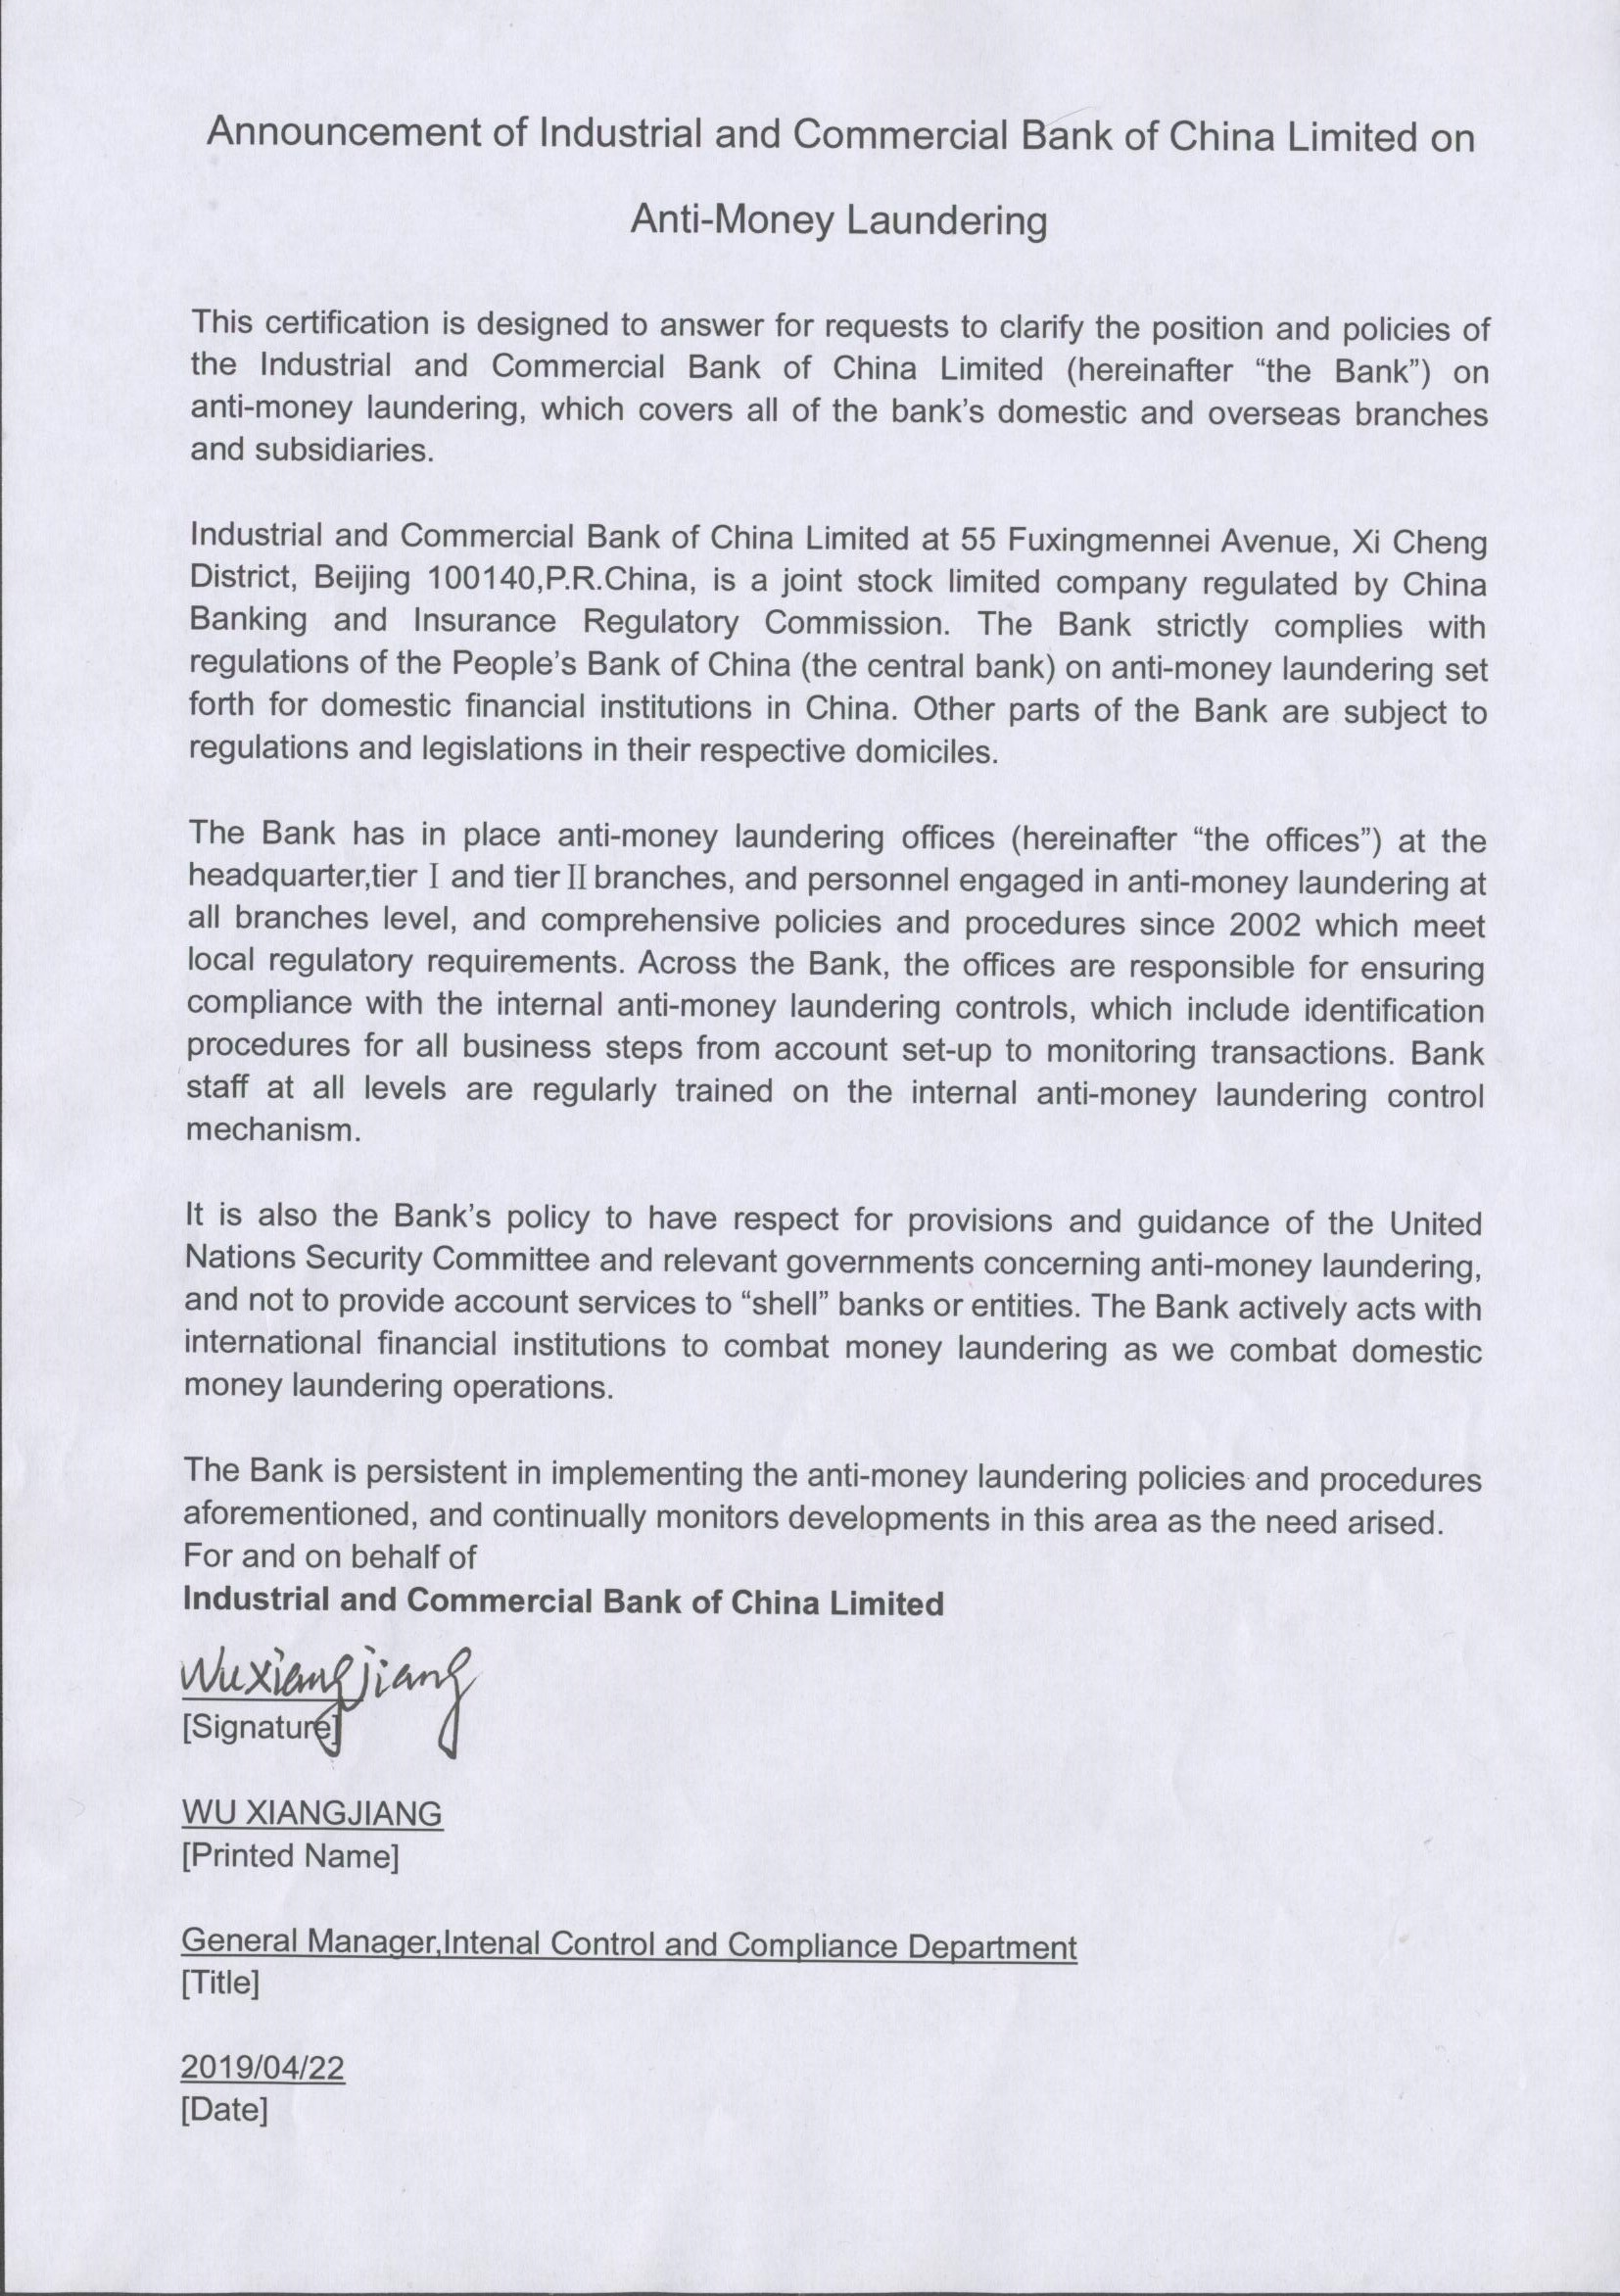 Anti-Money Laundering Announcement-Home-ICBC China